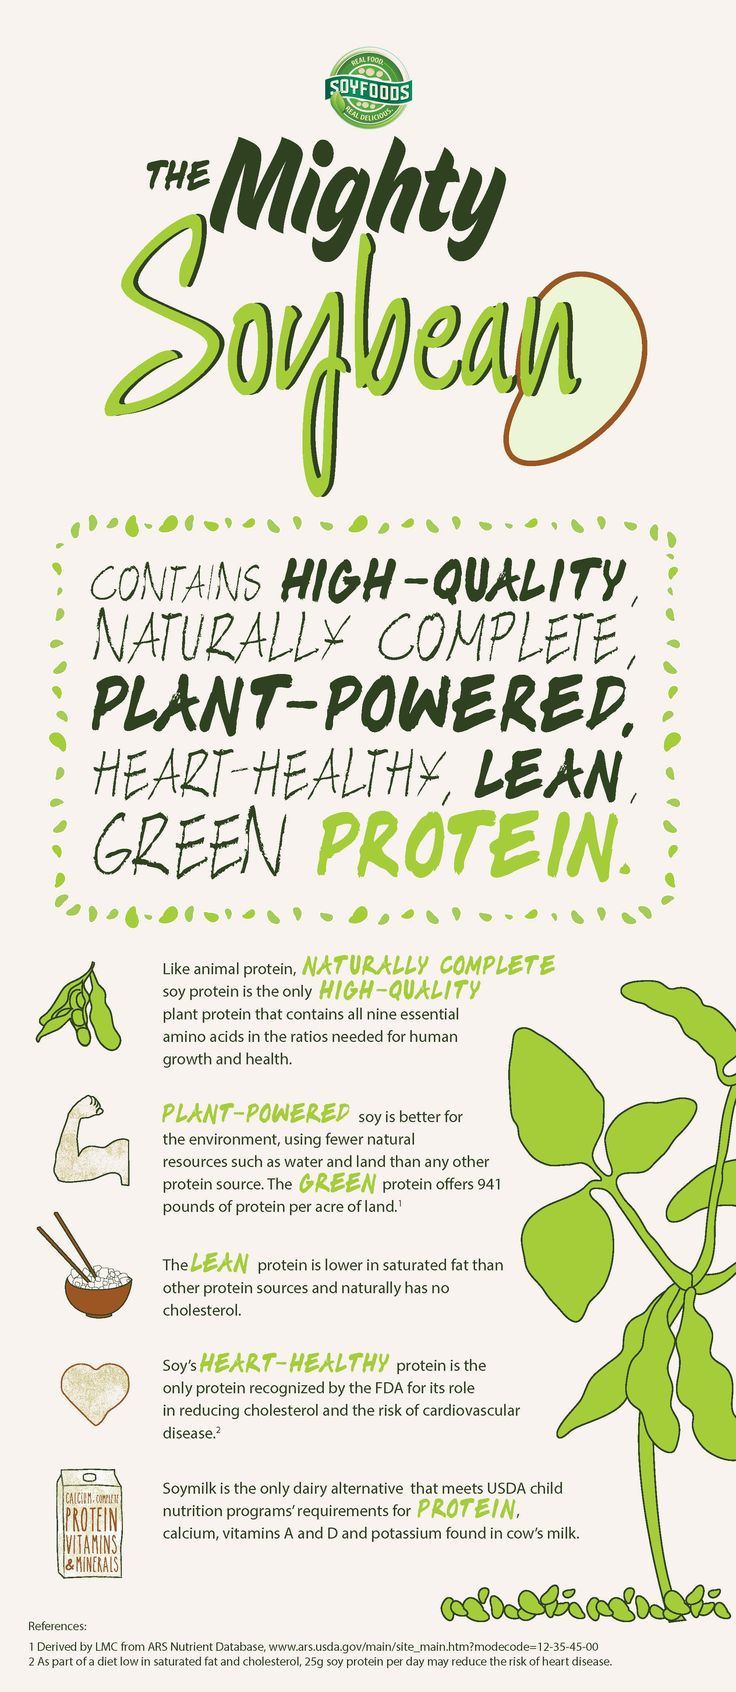 """This Fun Ag Fact infographic on soy protein explains how """"The Mighty Soybean"""" contains high-quality, naturally complete, plant-powered, heart-healthy, lean, green protein. This infographic also explores the reasons and research behind the health, nutritional and environmental factors of why soy is so good for you and the planet! Long live the soybean farmer!"""